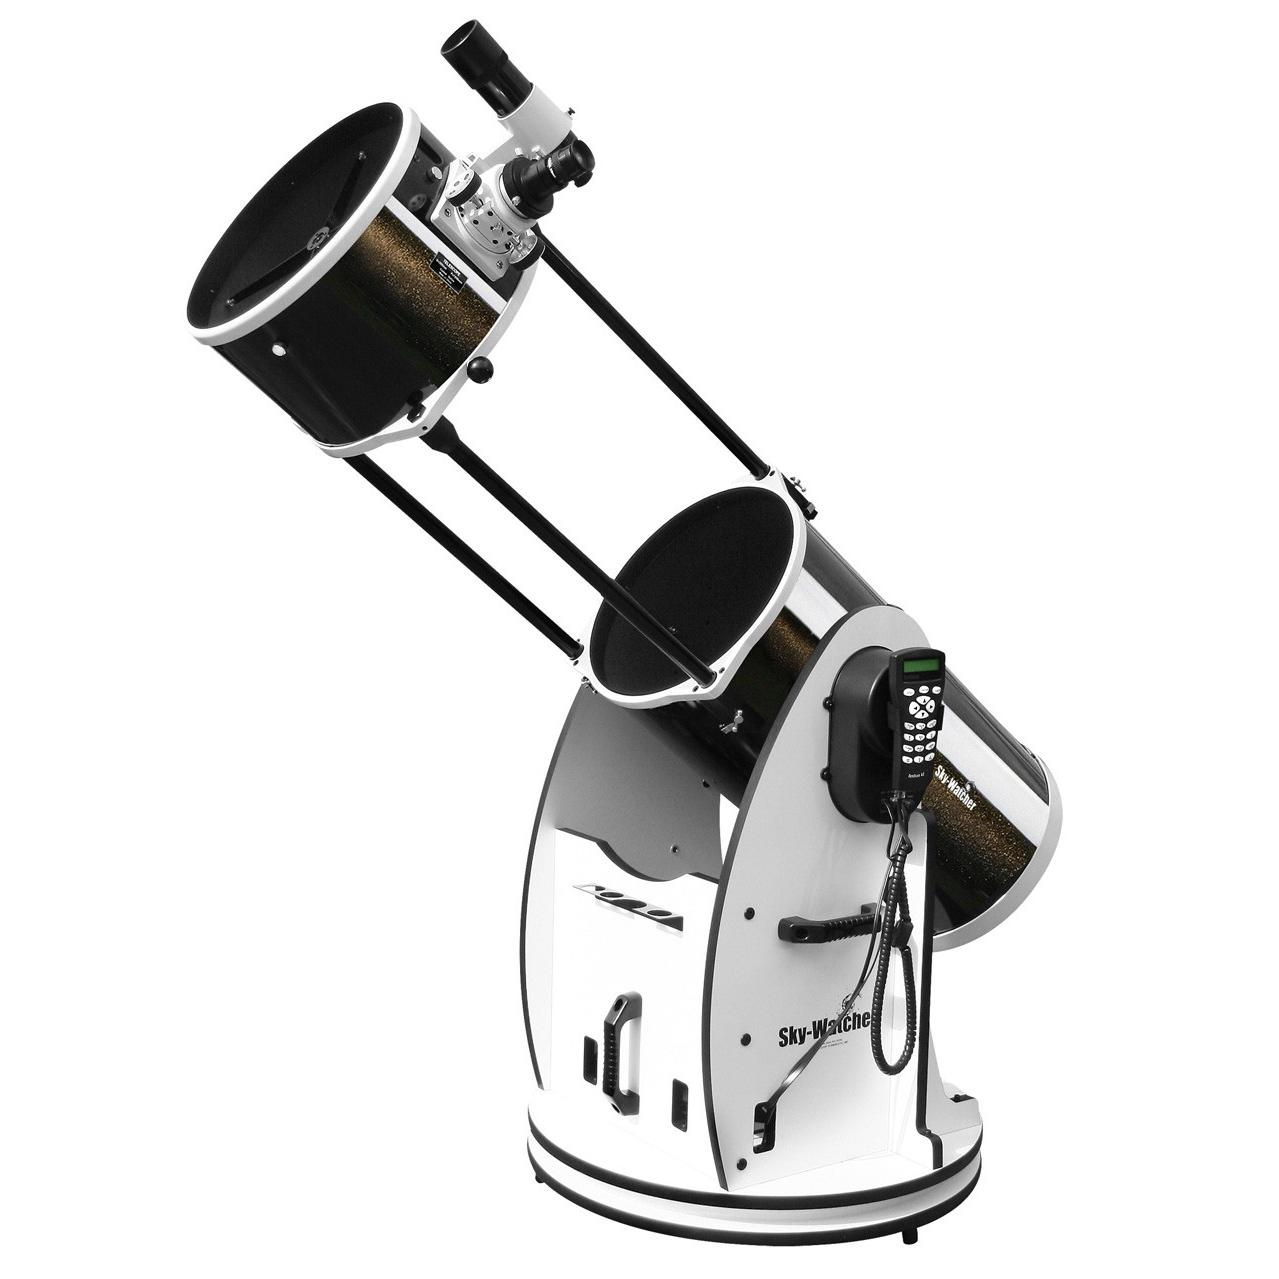 Skywatcher 12″ Go-To Computerised Dobsonian Reflector Telescope (12 Inch)